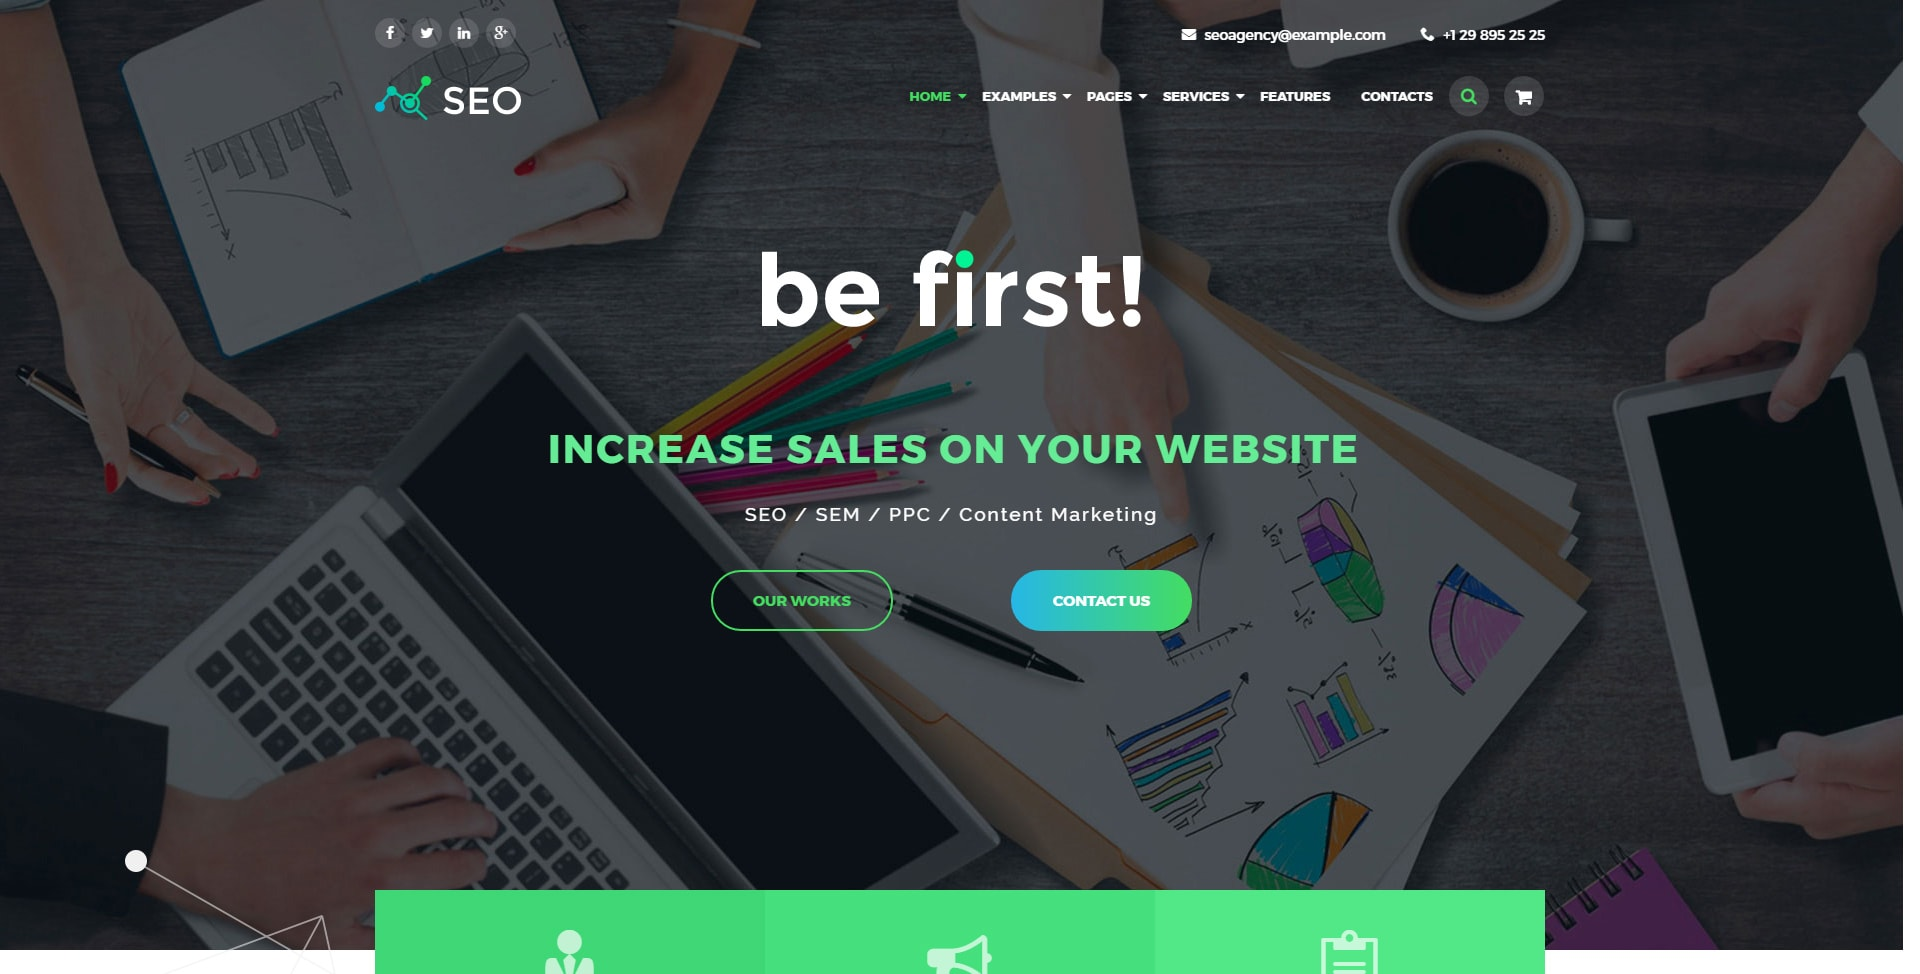 The SEO Digital Marketing Agency WordPress Theme